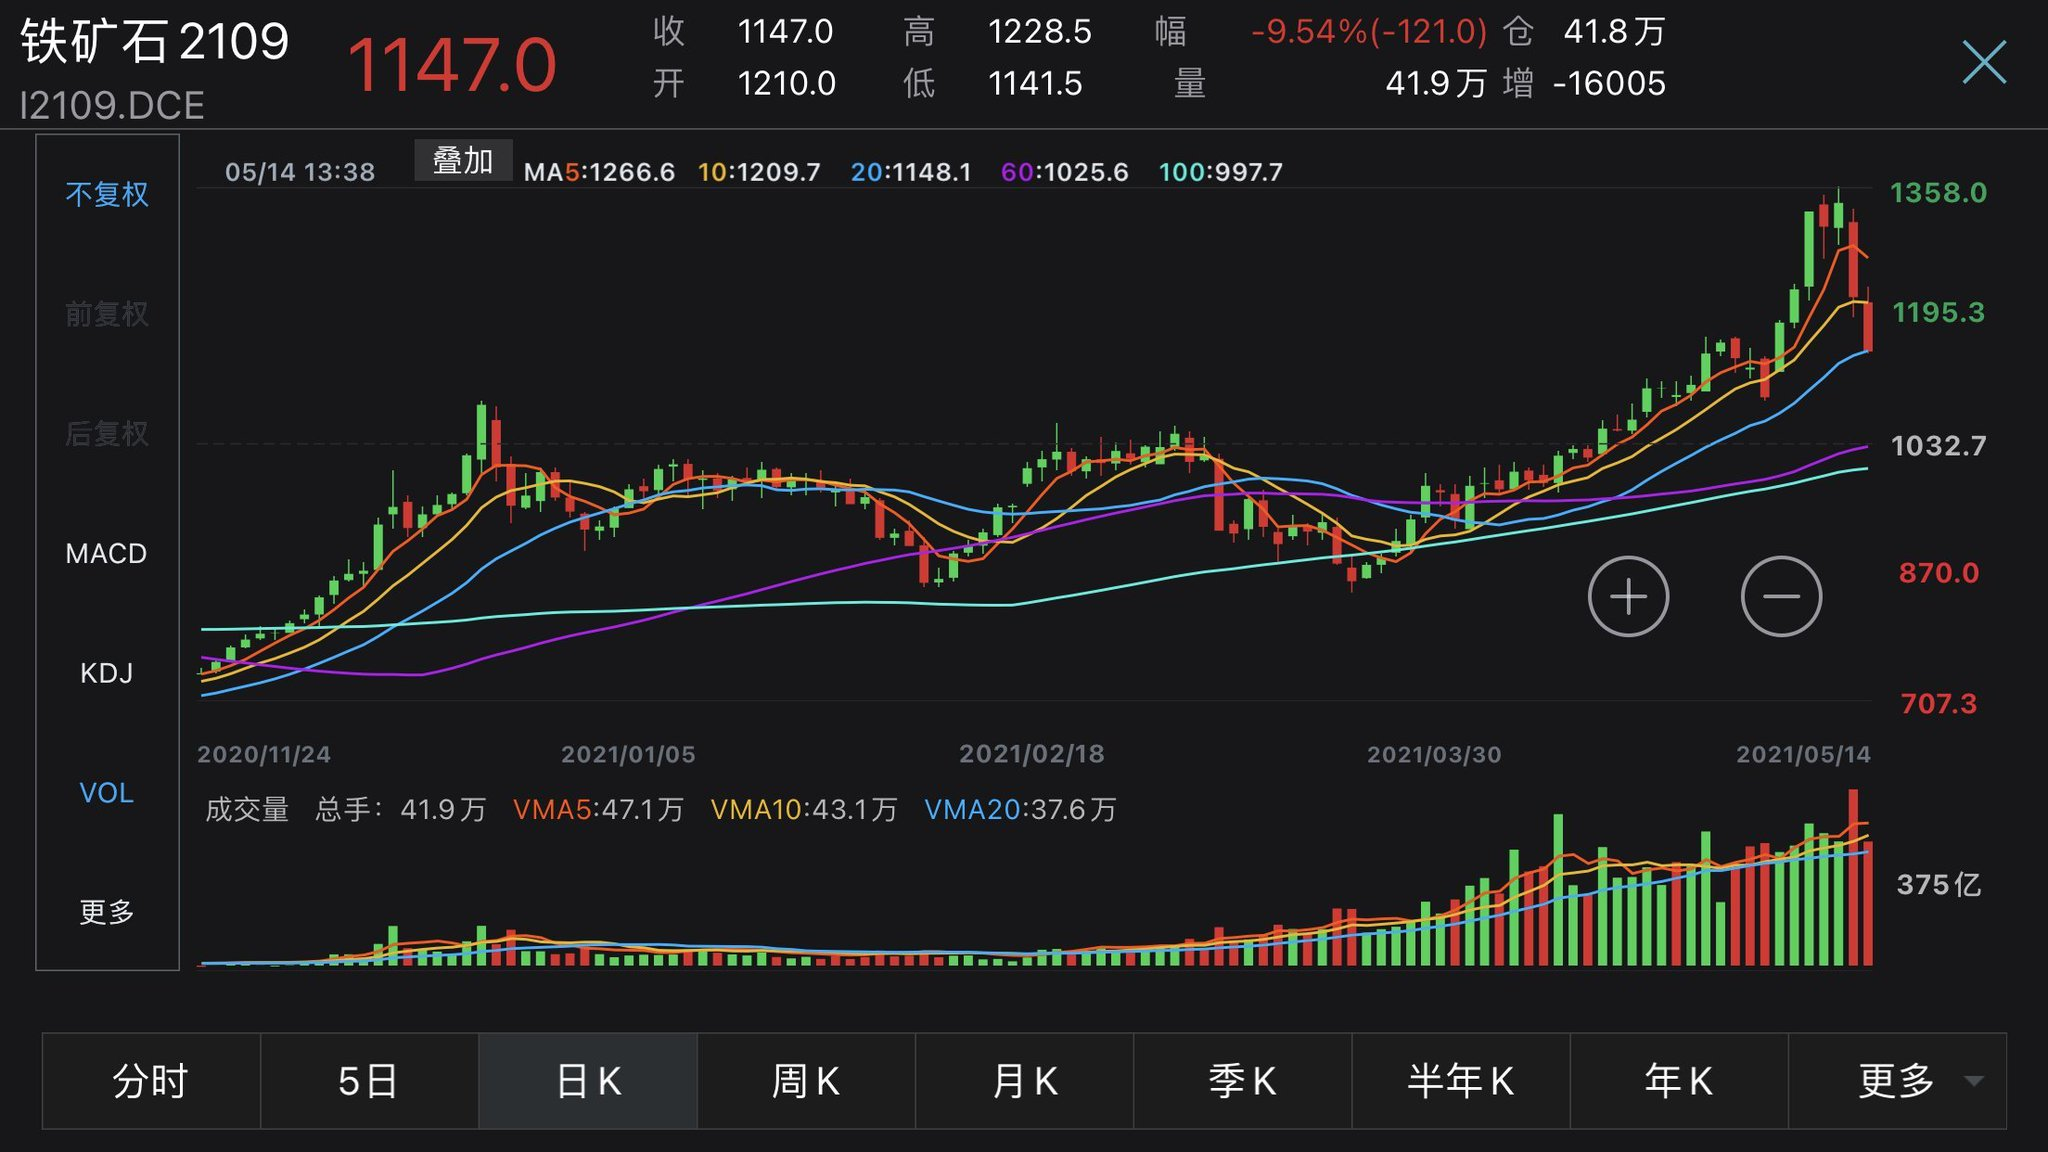 China iron ore prices are limit down -10% today